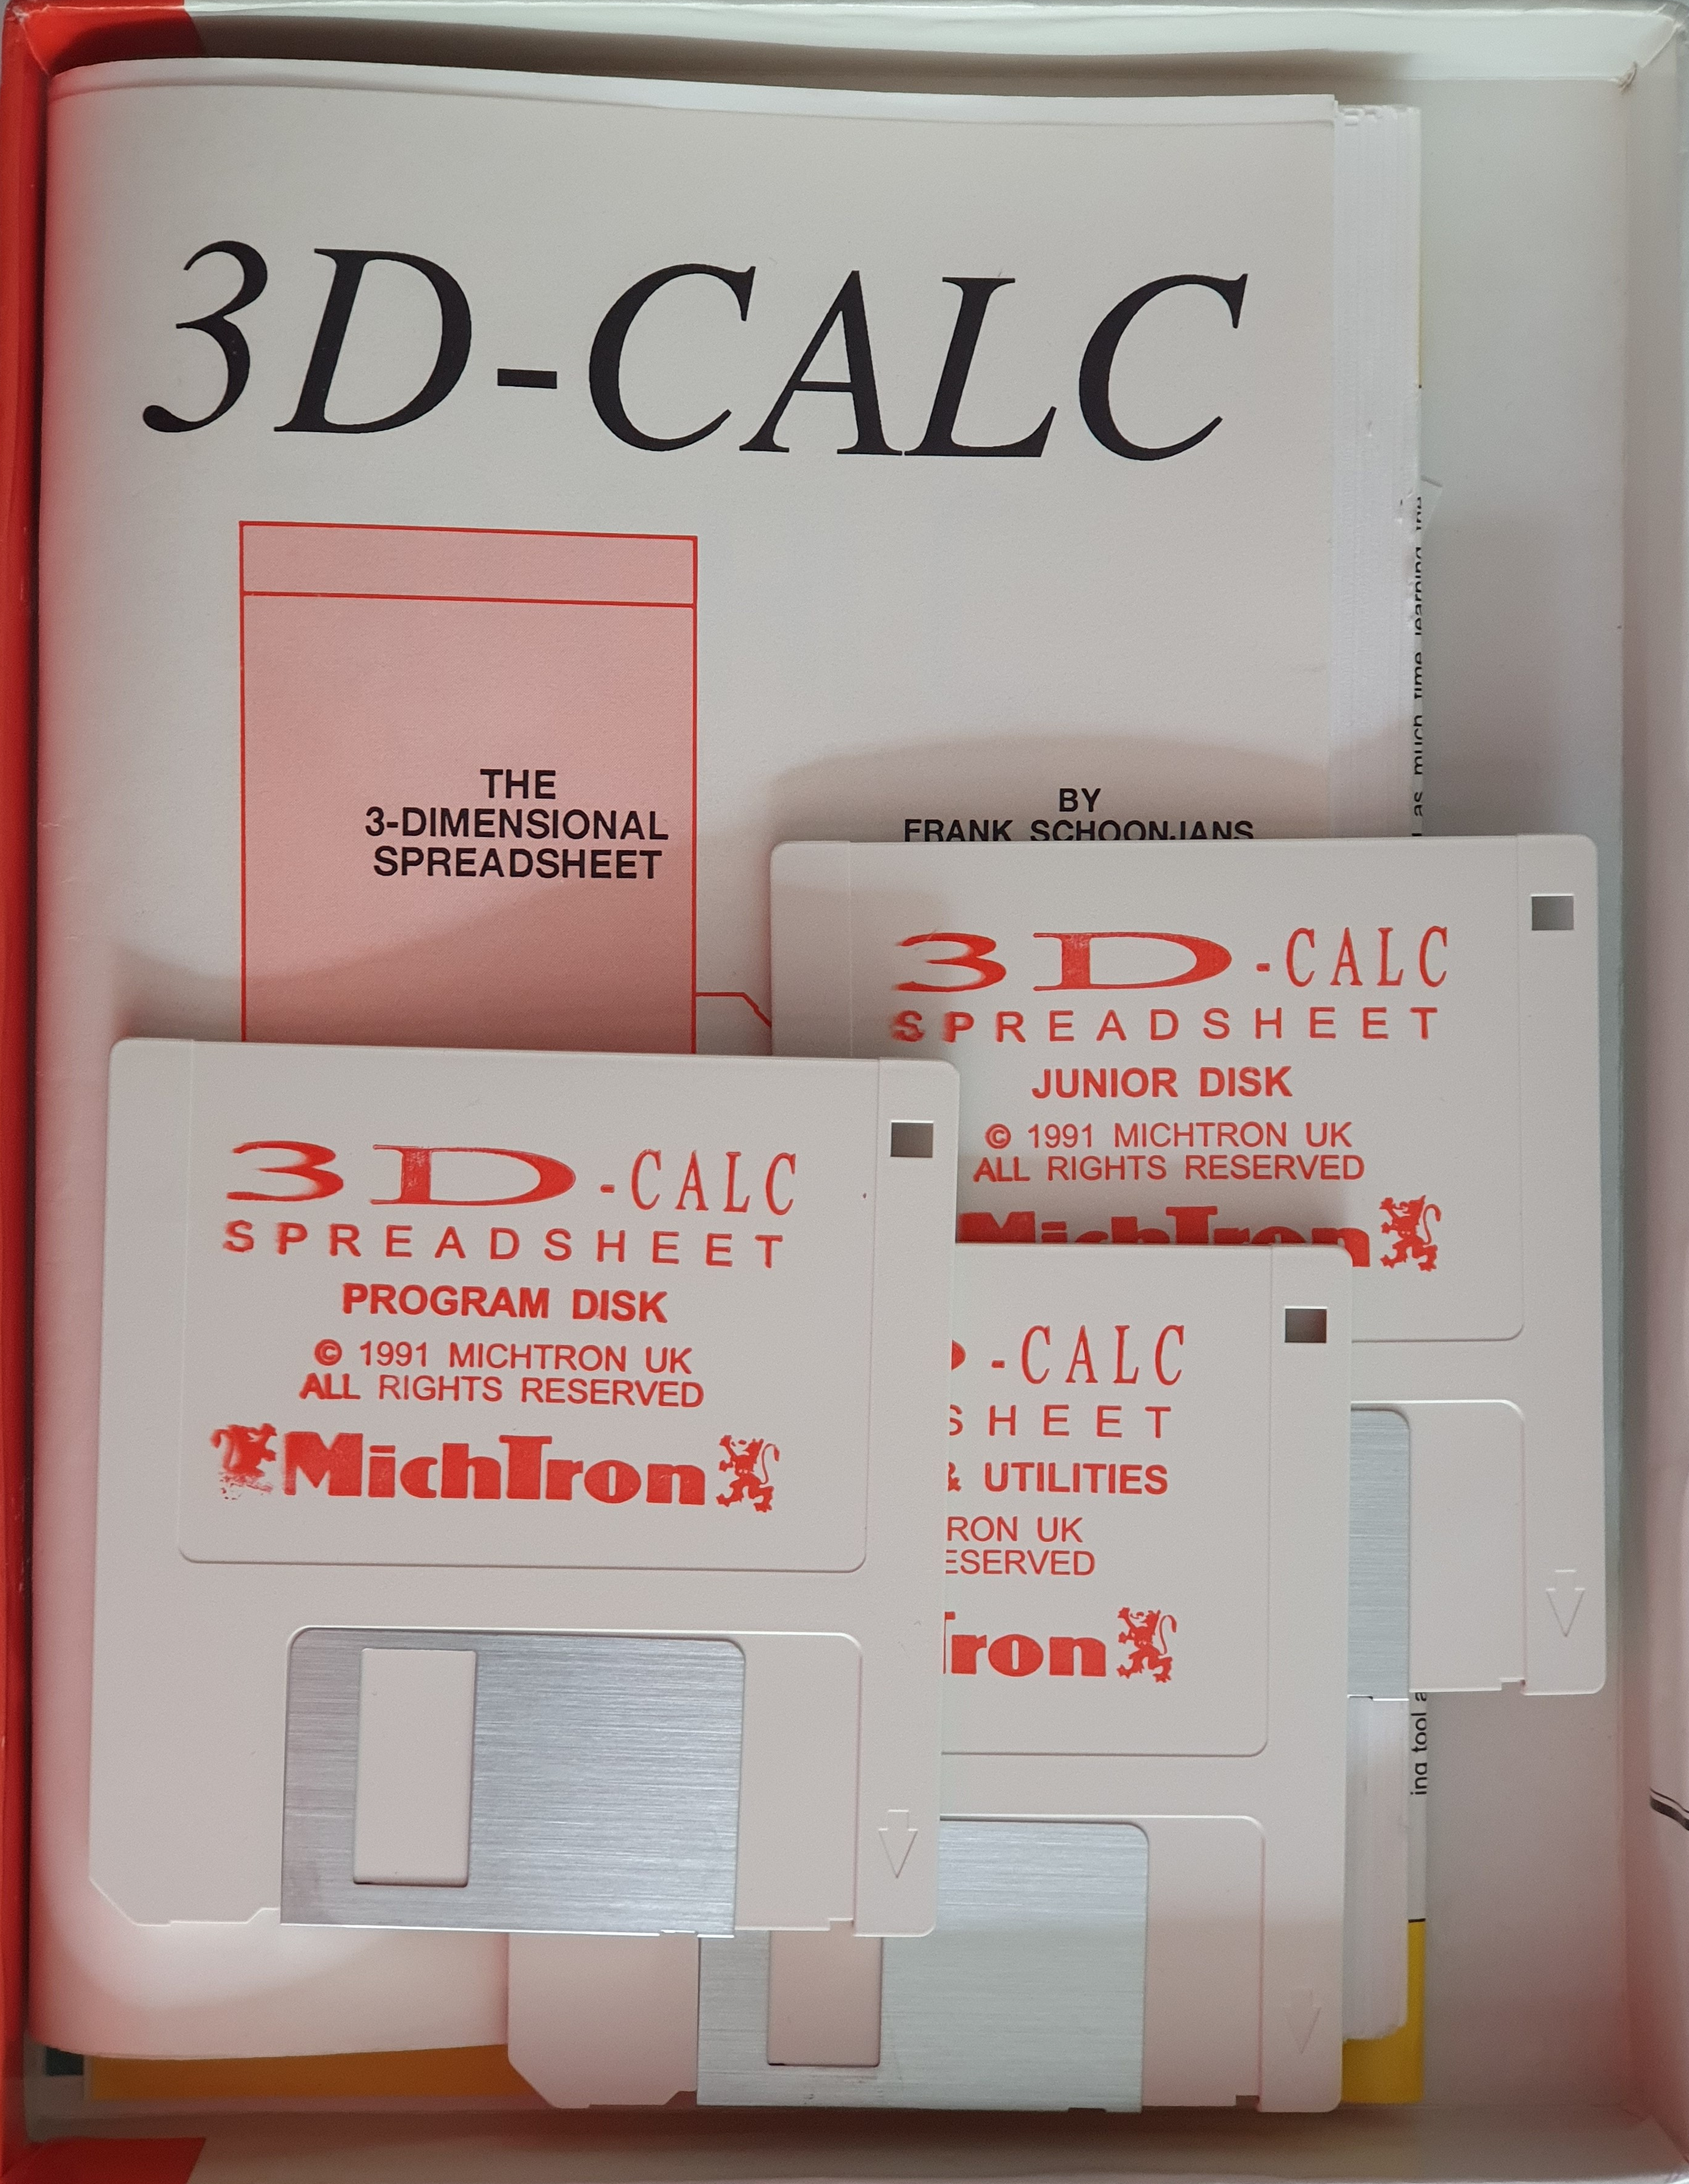 The box contents of the Michtron release.